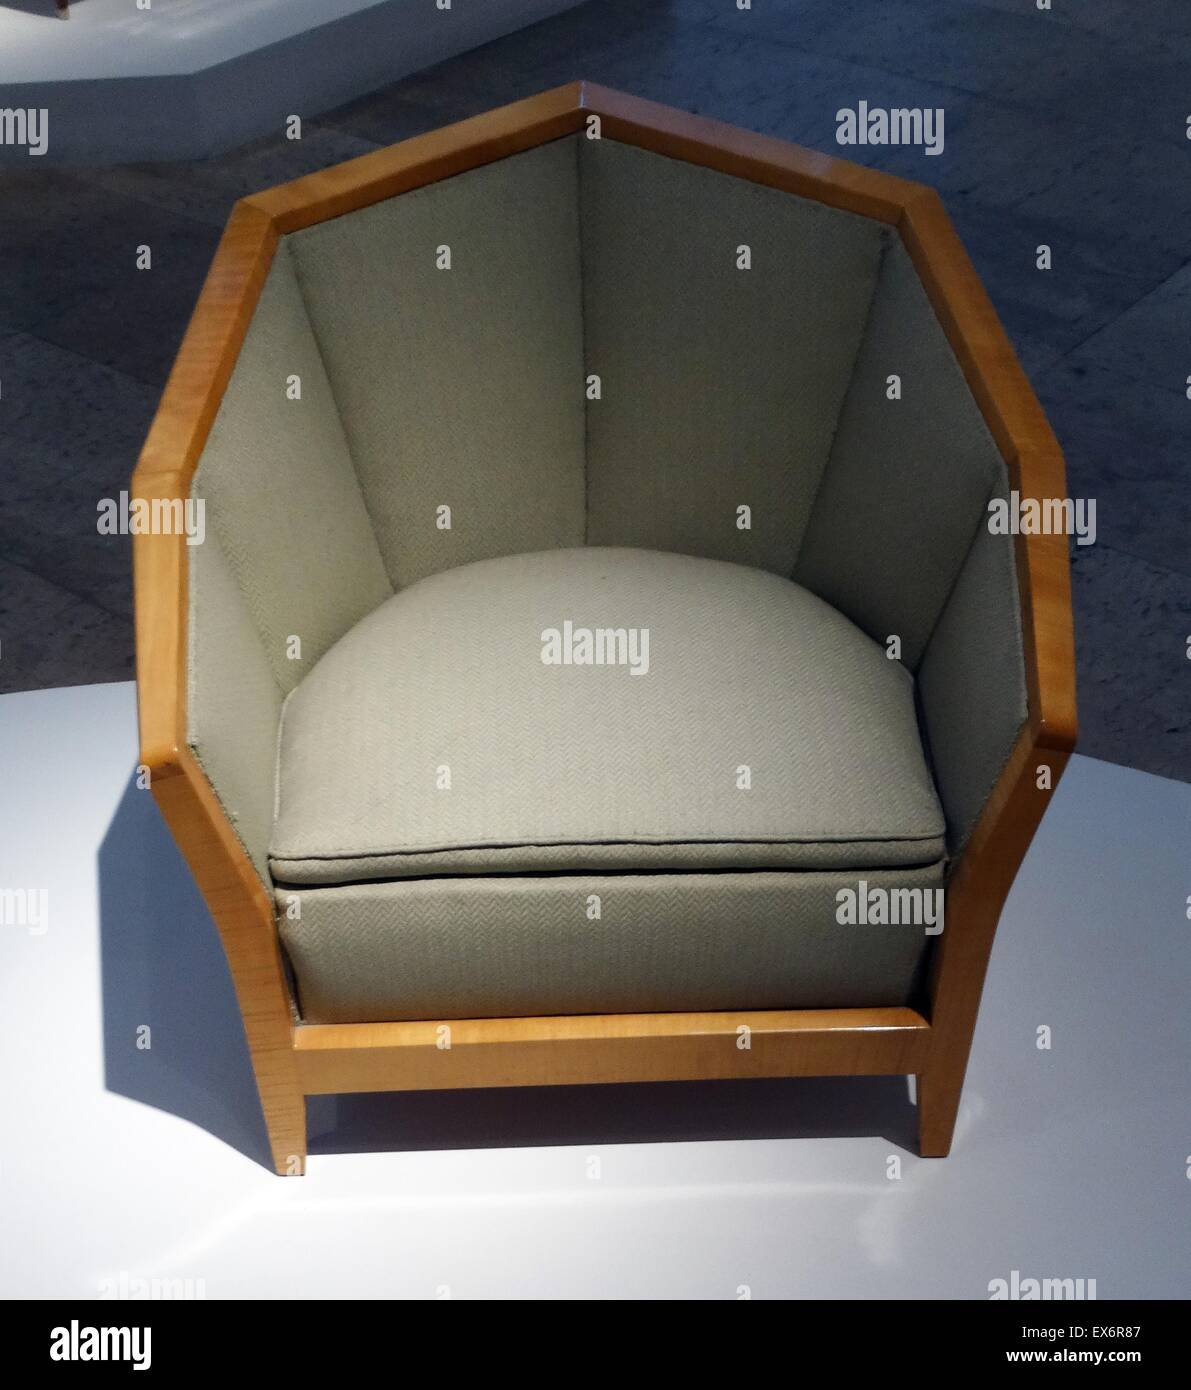 Hexagonal chair created by Pierre Chareau (1883-1950) a French architect and designer. Dated 1920 - Stock Image